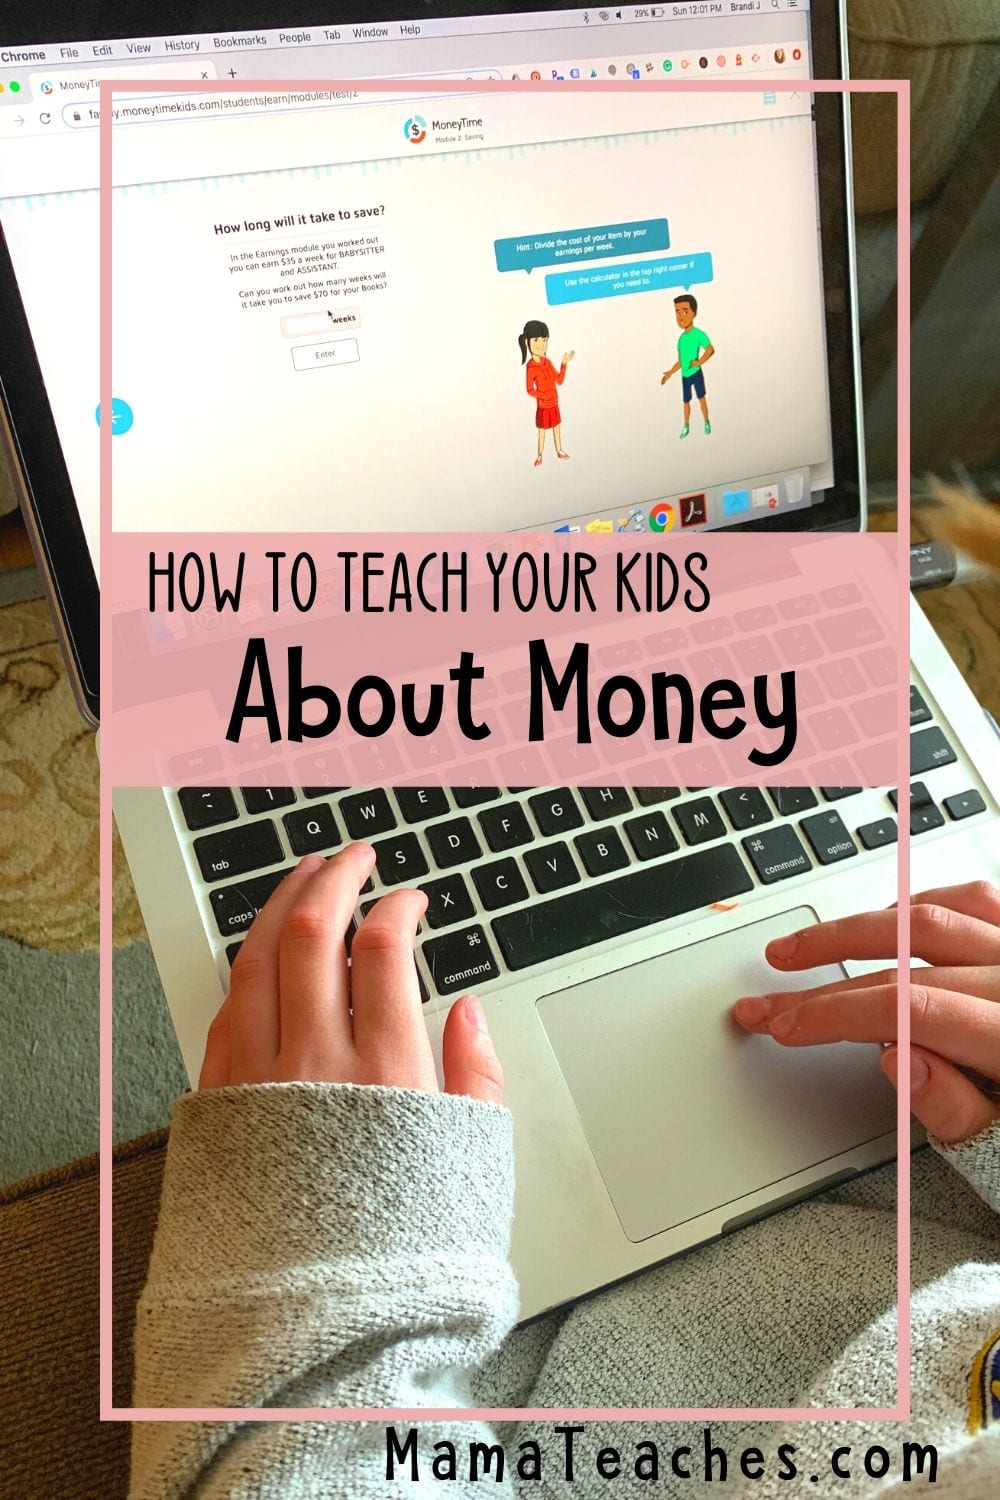 7 Ways to Teach Your Kids About Money Even if You're Not the Best at Managing It